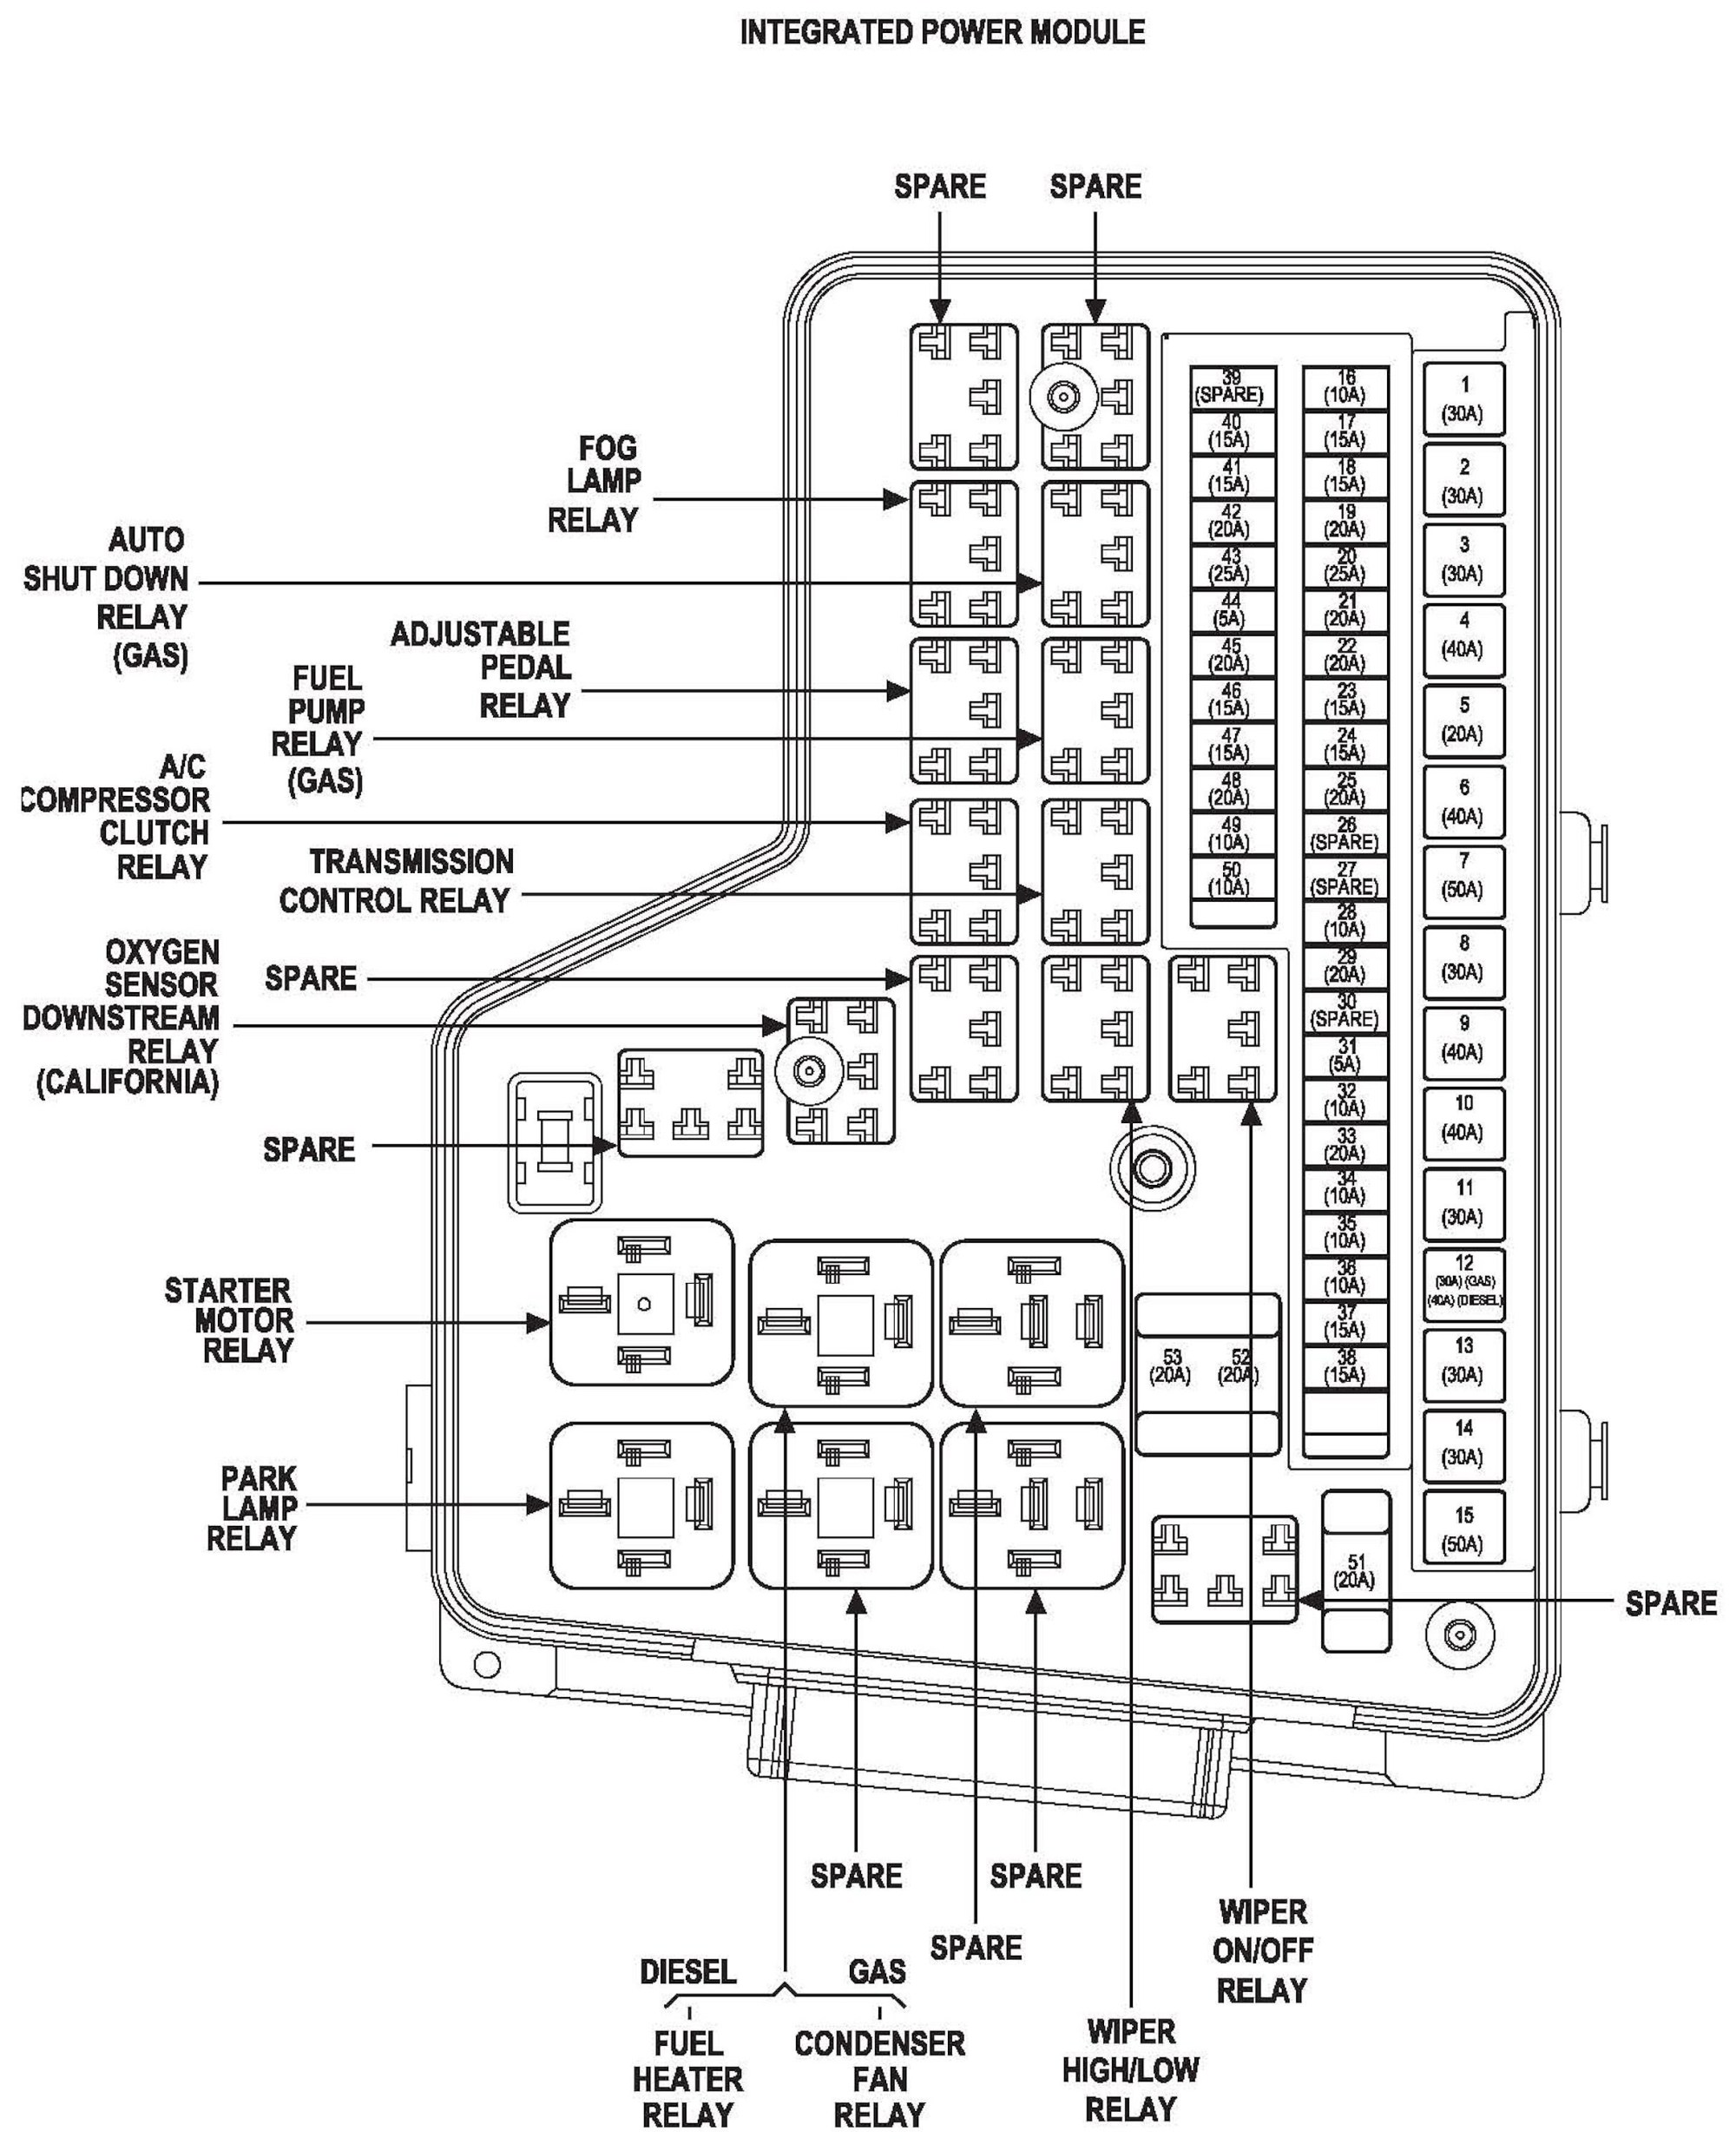 hight resolution of 2009 dodge ram 1500 fuse diagram wiring diagram used 2009 dodge 1500 fuse box 2009 dodge